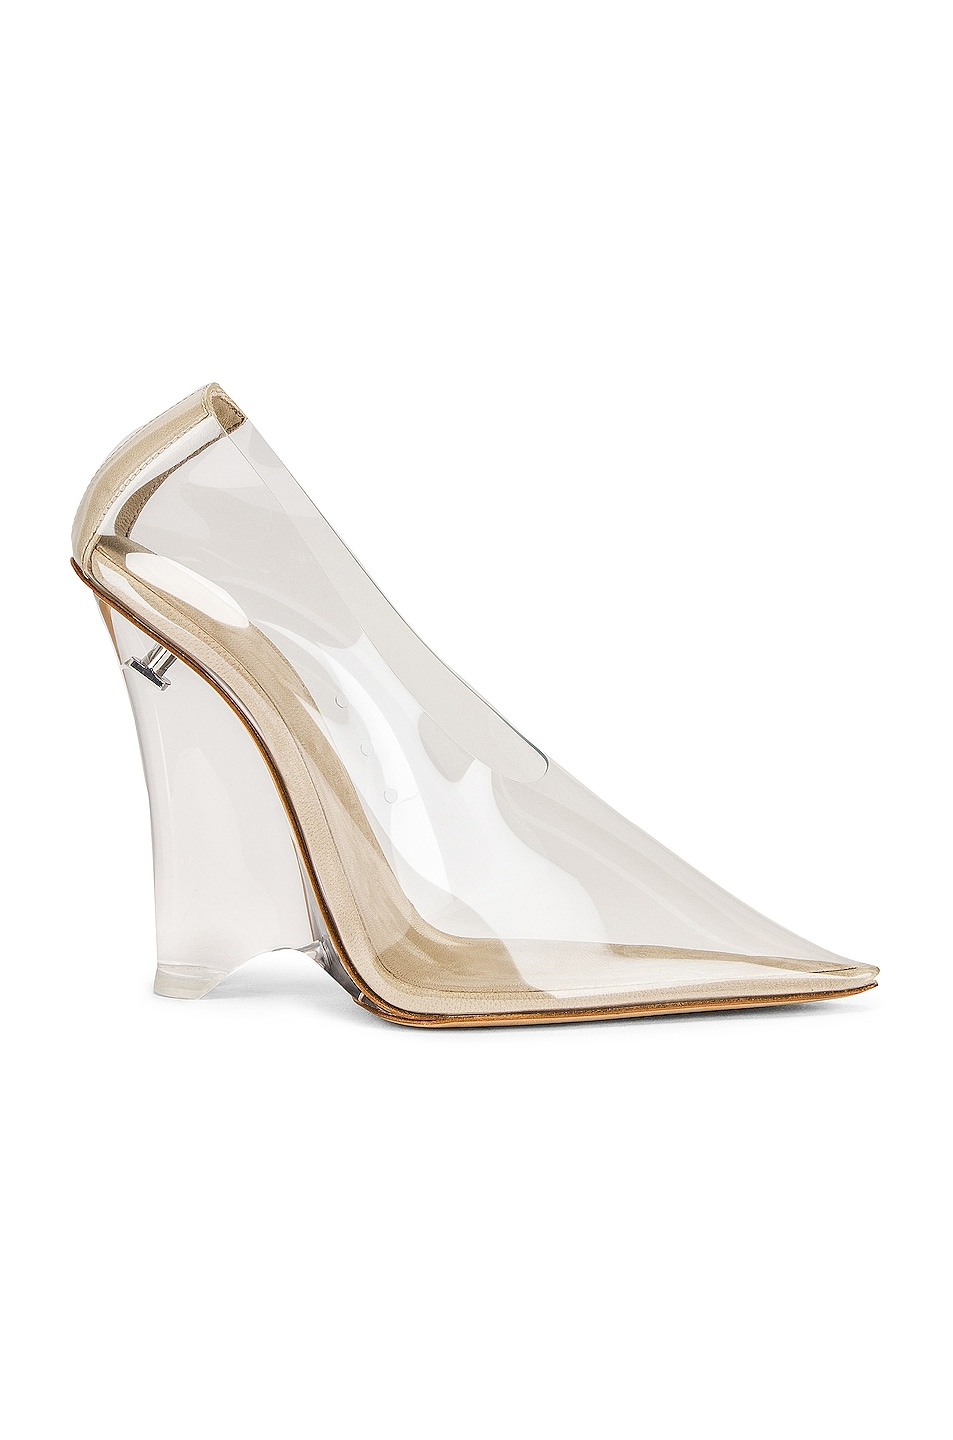 free shipping YEEZY Season 8 Wedge Pump Clear